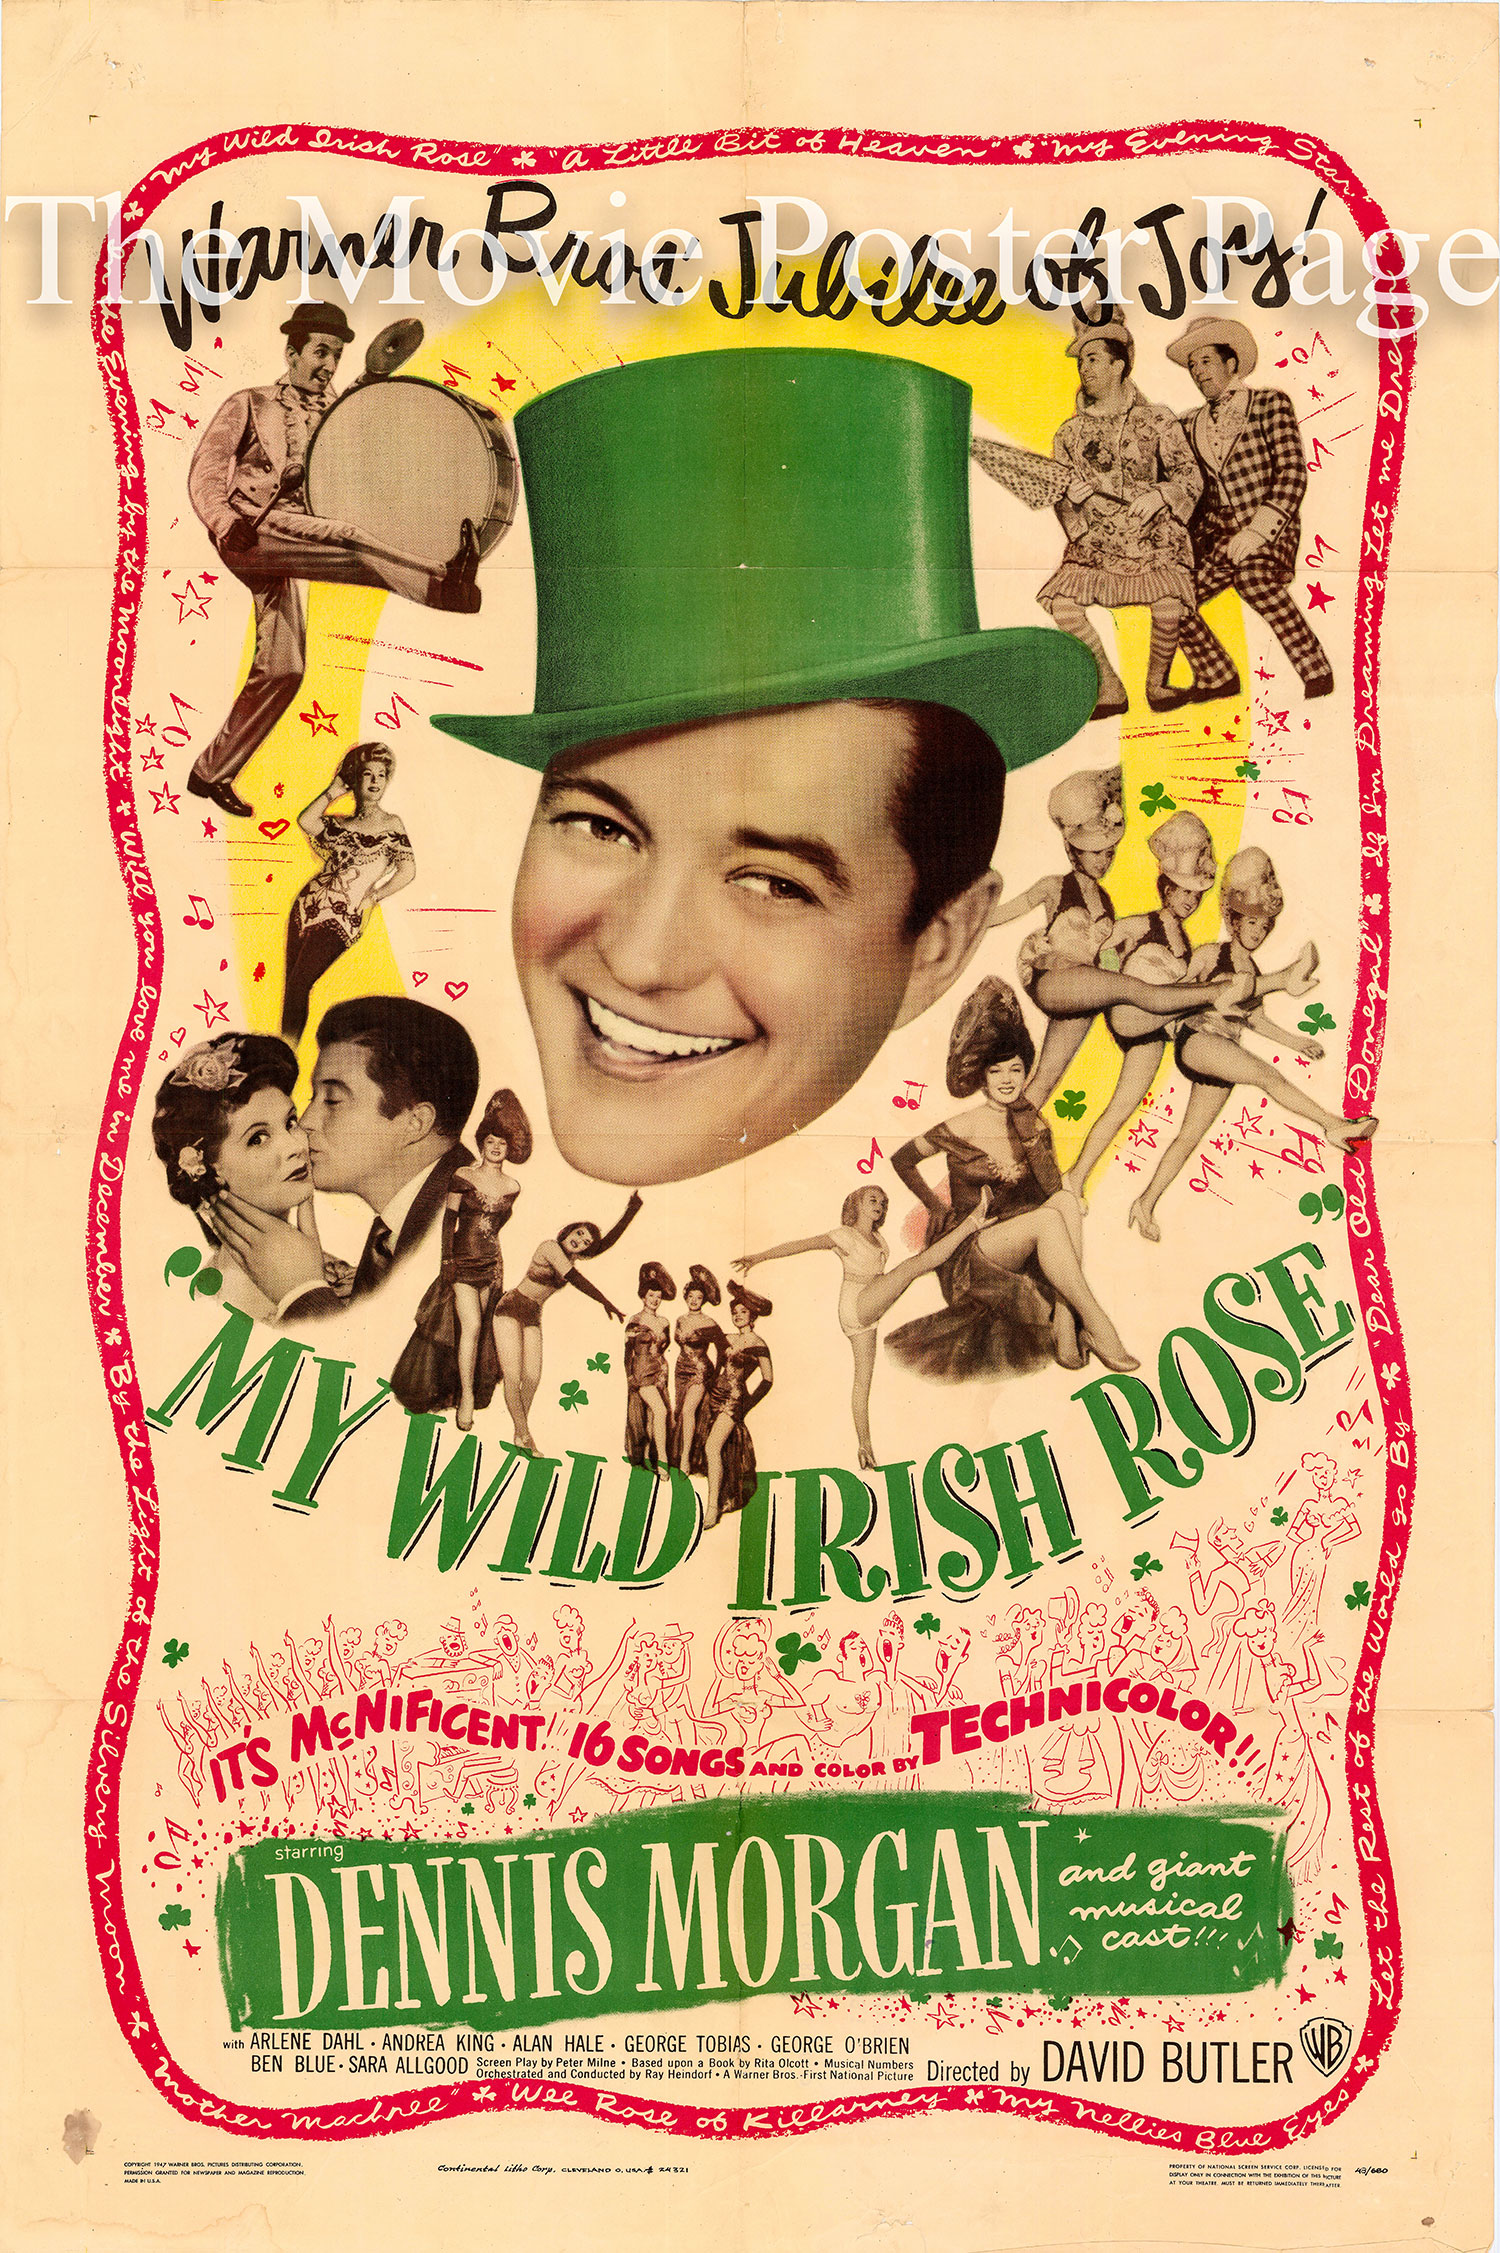 Pictured is a US one-sheet promotional poster for the 1948 David Butler film My Wild Irish Rose starring Dennis Morgan and Arlene Dahl.